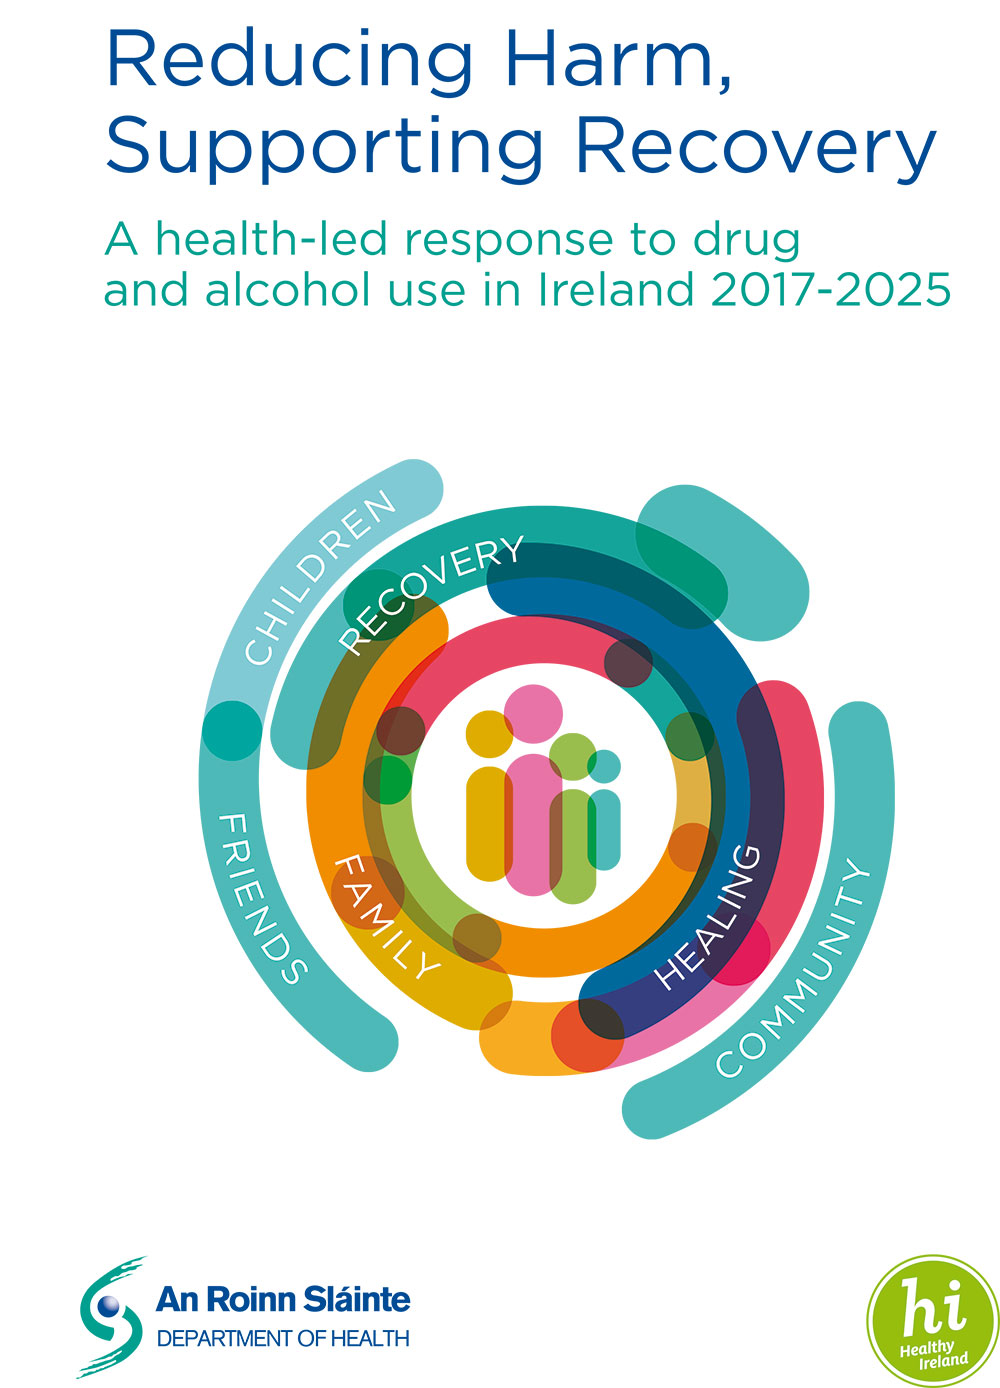 National-Drugs-Rehabilitation-Framework-2010